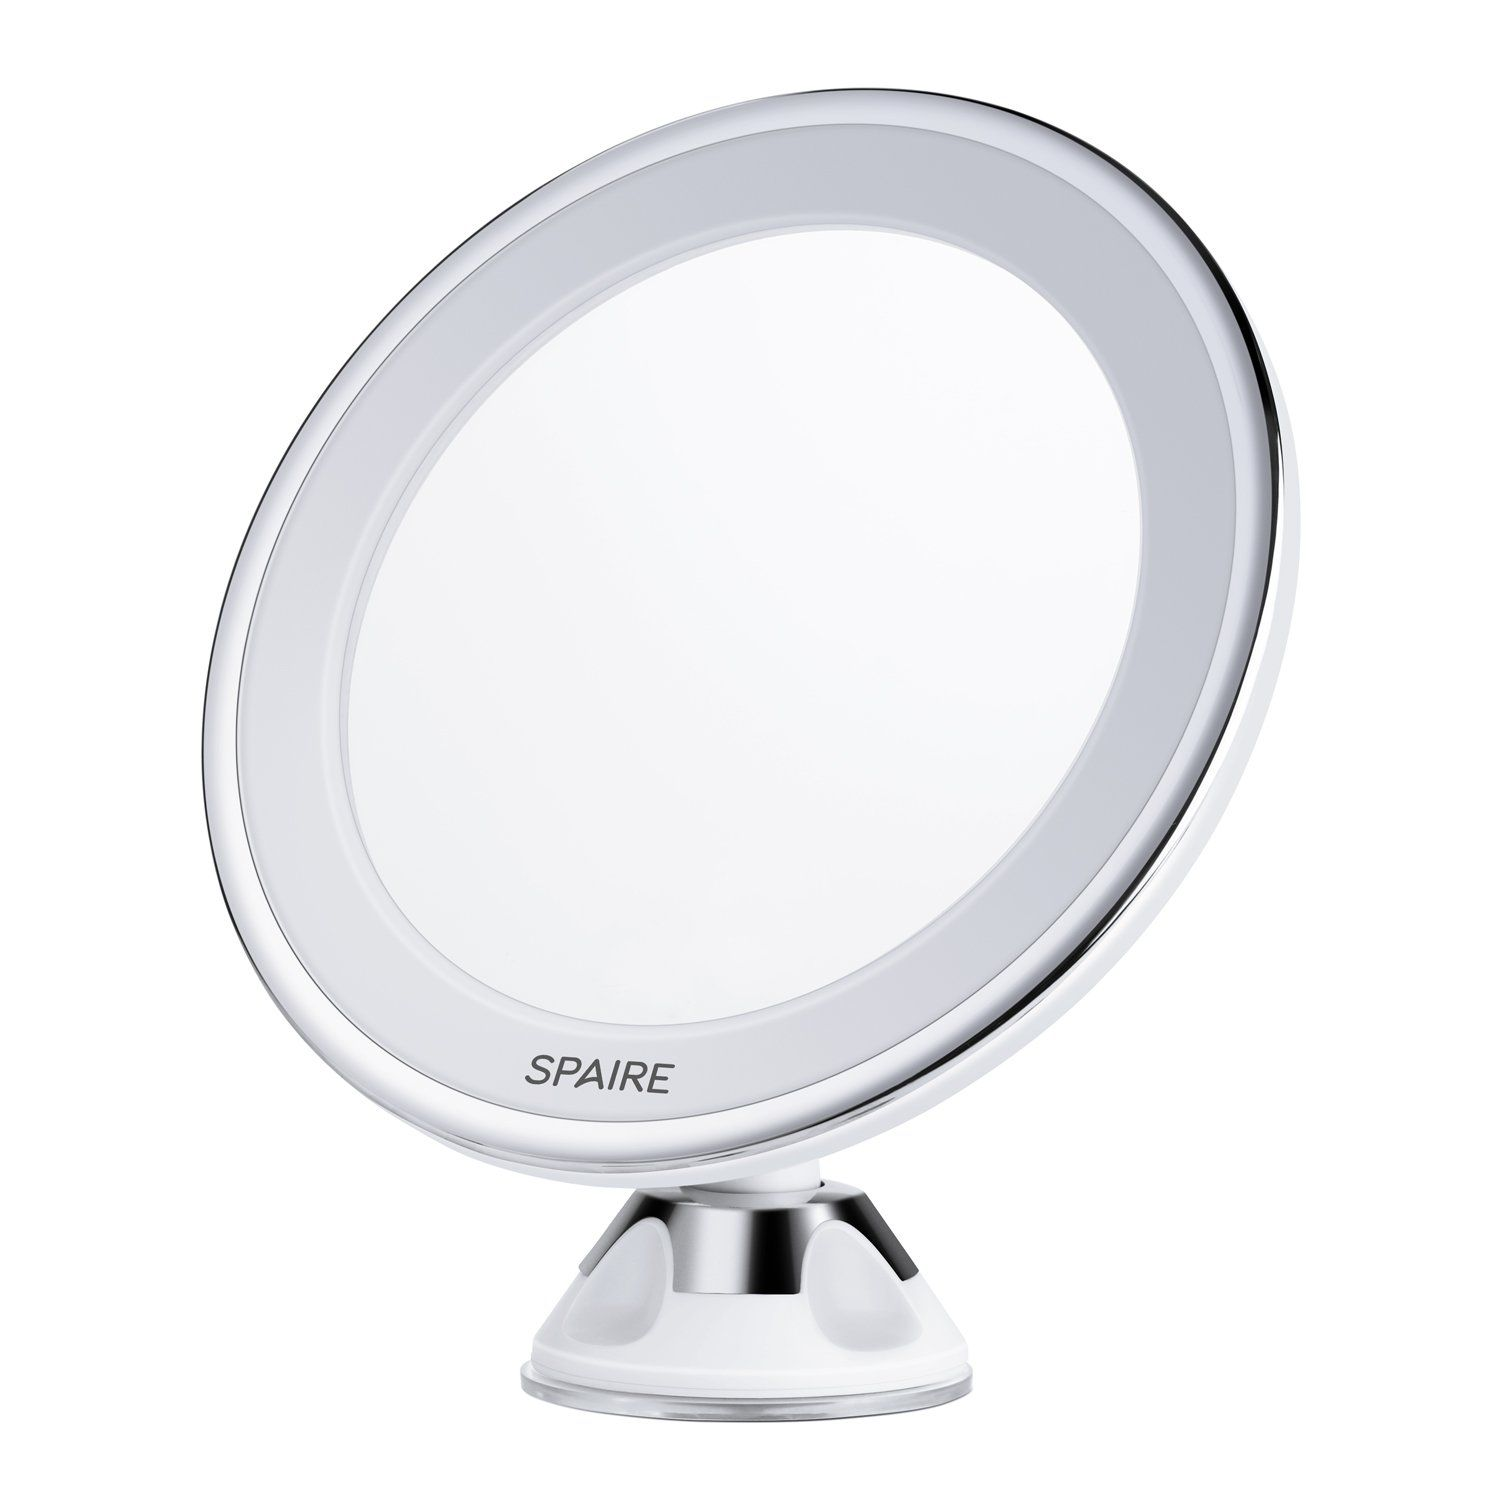 Spaire Lighted Vanity Makeup Mirror 7X Magnifying LED Bathroom ...